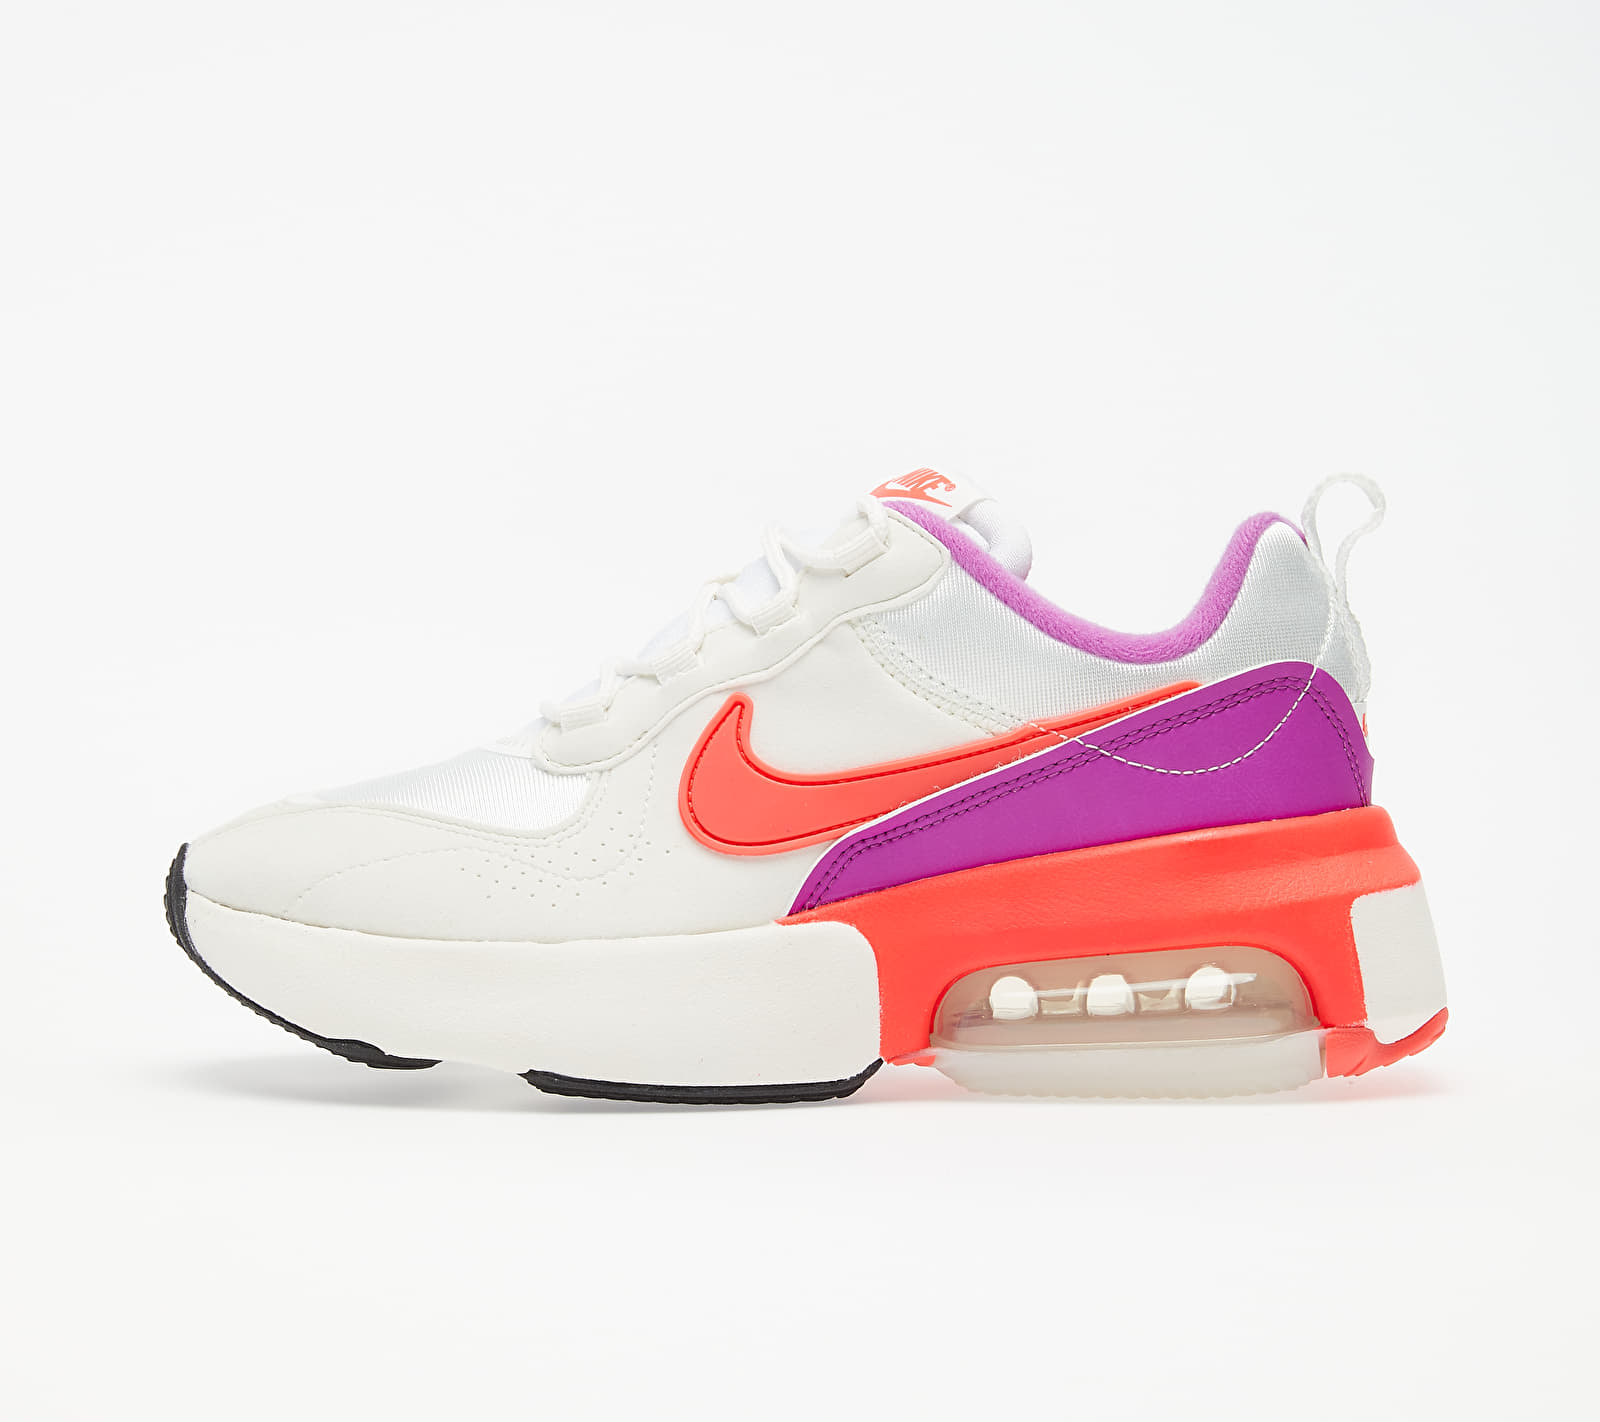 Nike W Air Max Verona Summit White/ Laser Crimson-Sail-Magenta EUR 38.5